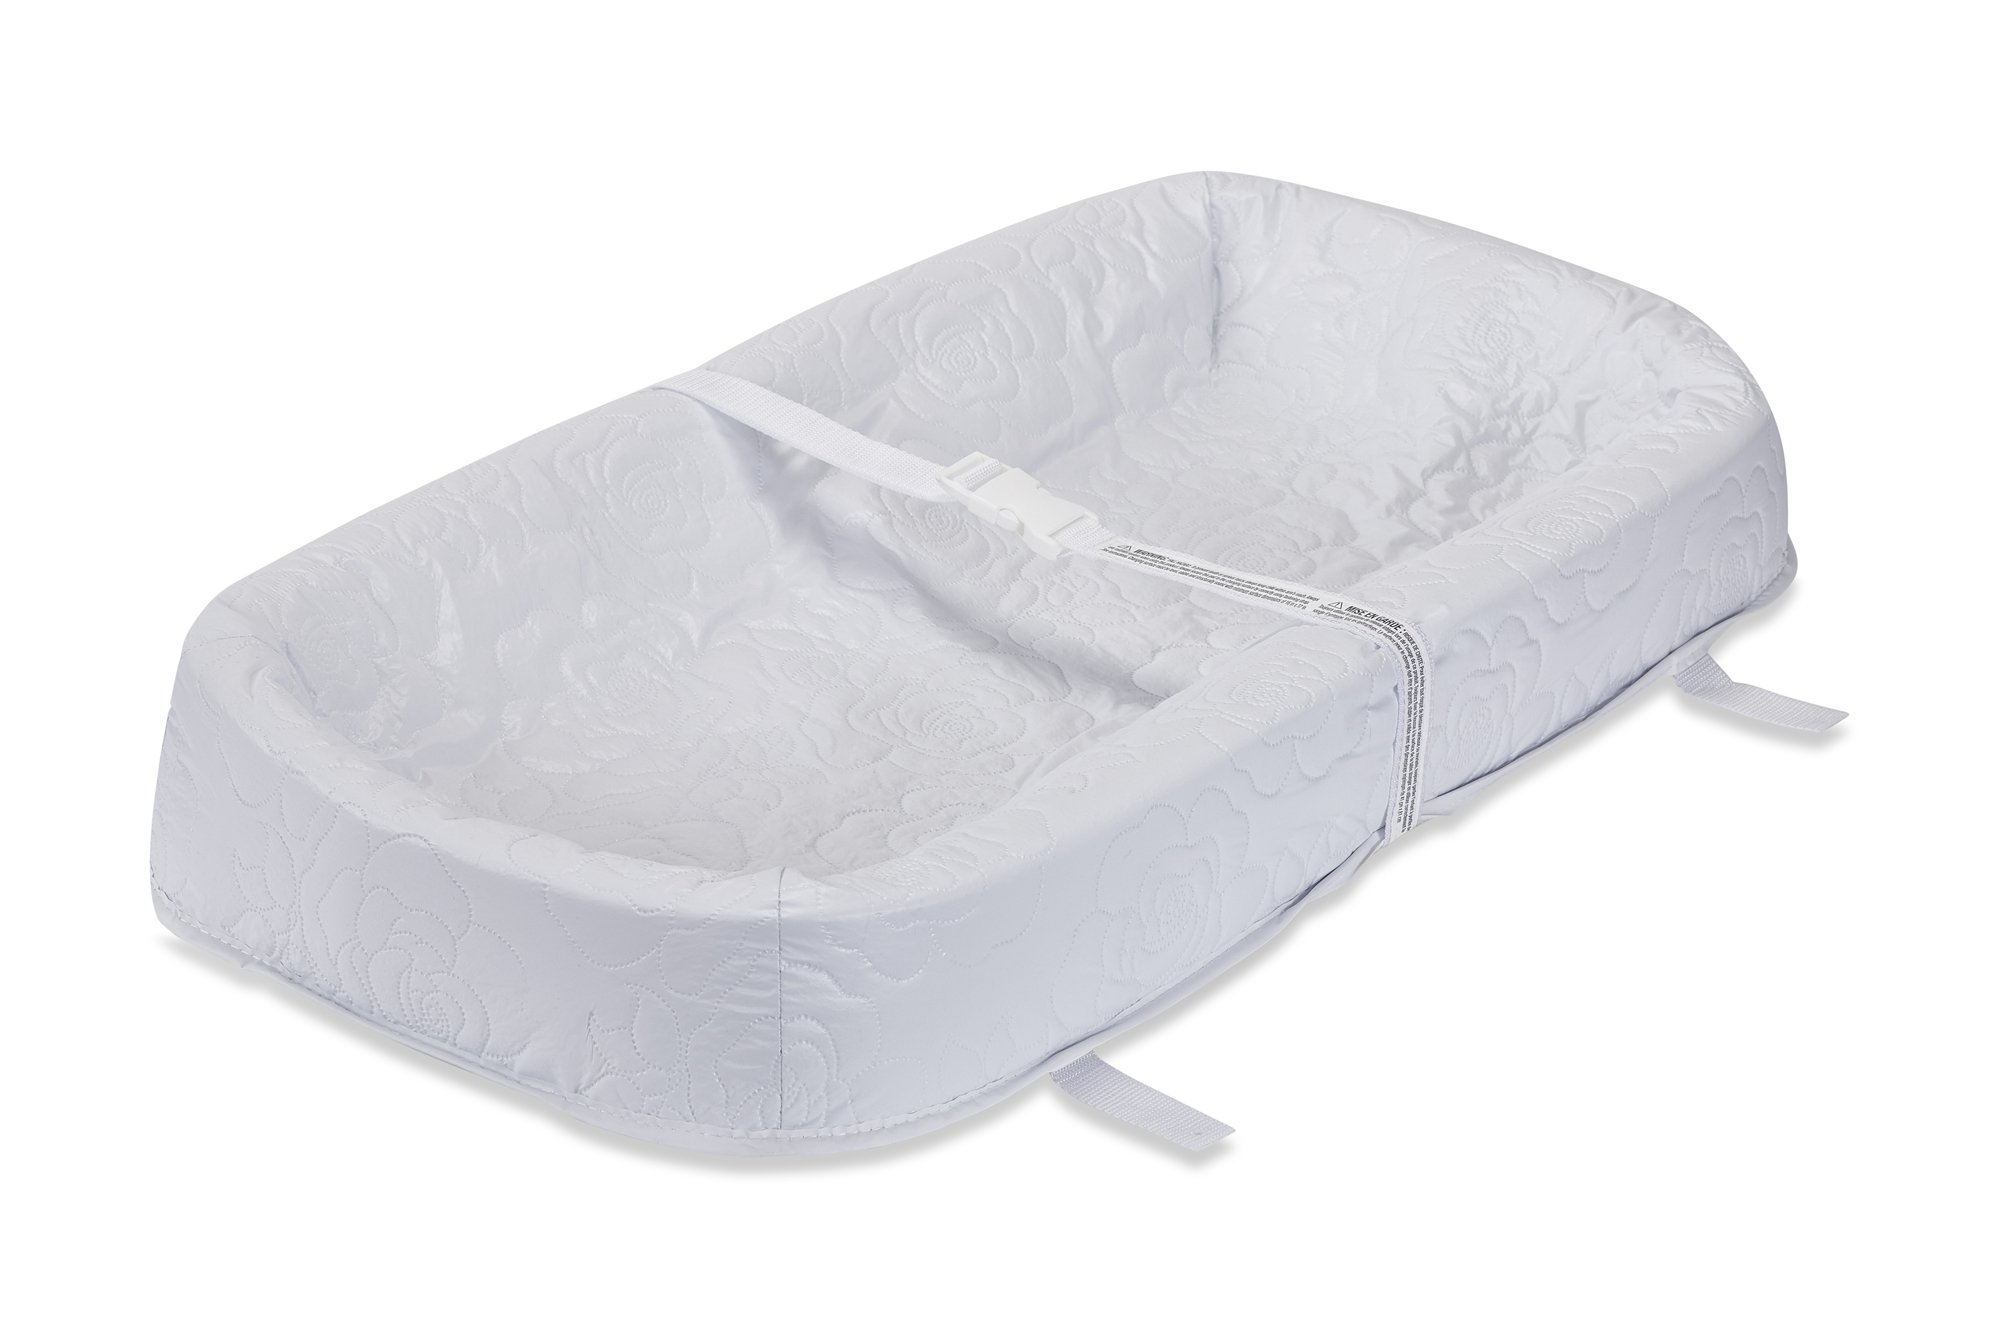 LA Baby Waterproof 4 Sided Cocoon Changing Pad, 32'' - Made in USA. Easy to Clean Cover w/Non-Skid Bottom, Safety Strap, Fits All Standard Changing Tables/Dresser for Best Infant Diaper Change by LA Baby